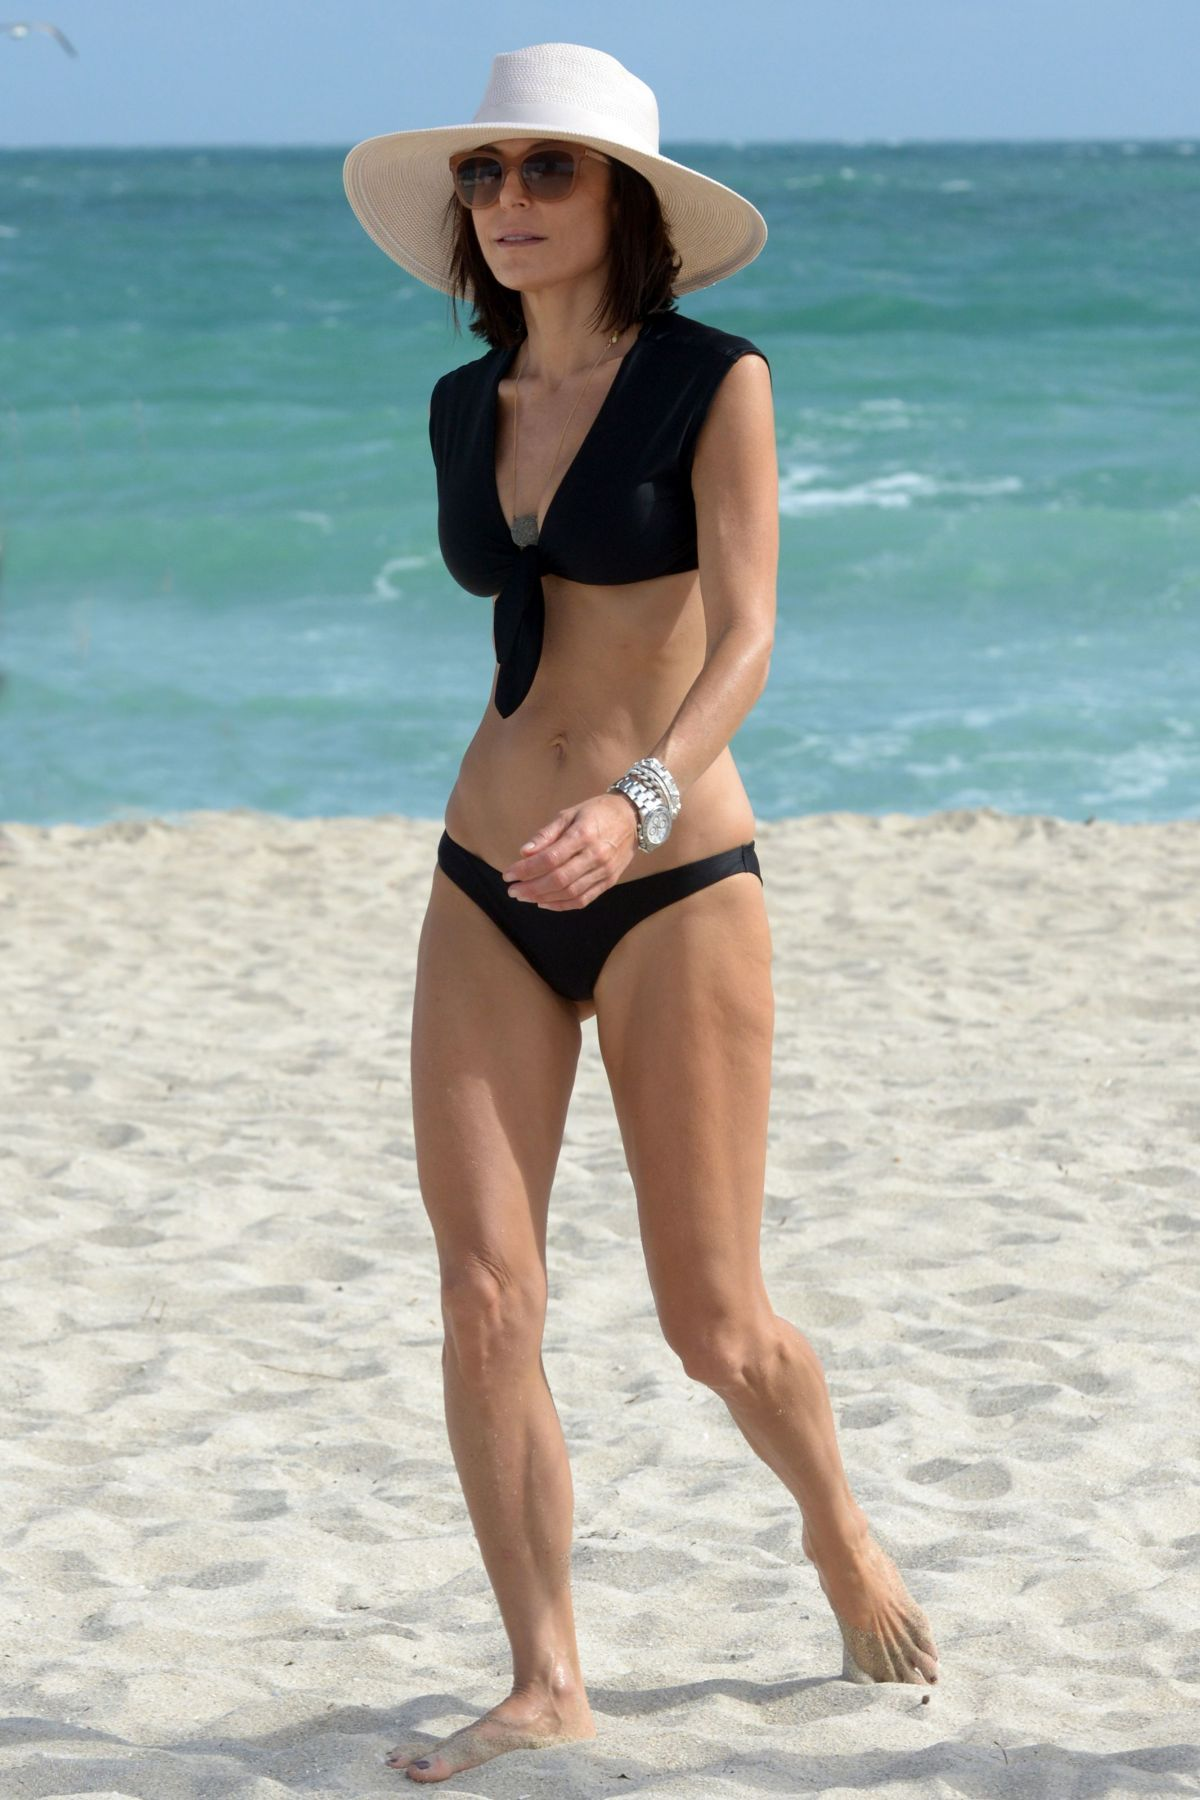 BETHENNY FRANKEL in Bikini on the Beach in Miami 12/05/2016   bethenny-frankel-in-bikini-on-the-beach-in-miami-12-05-2016_20